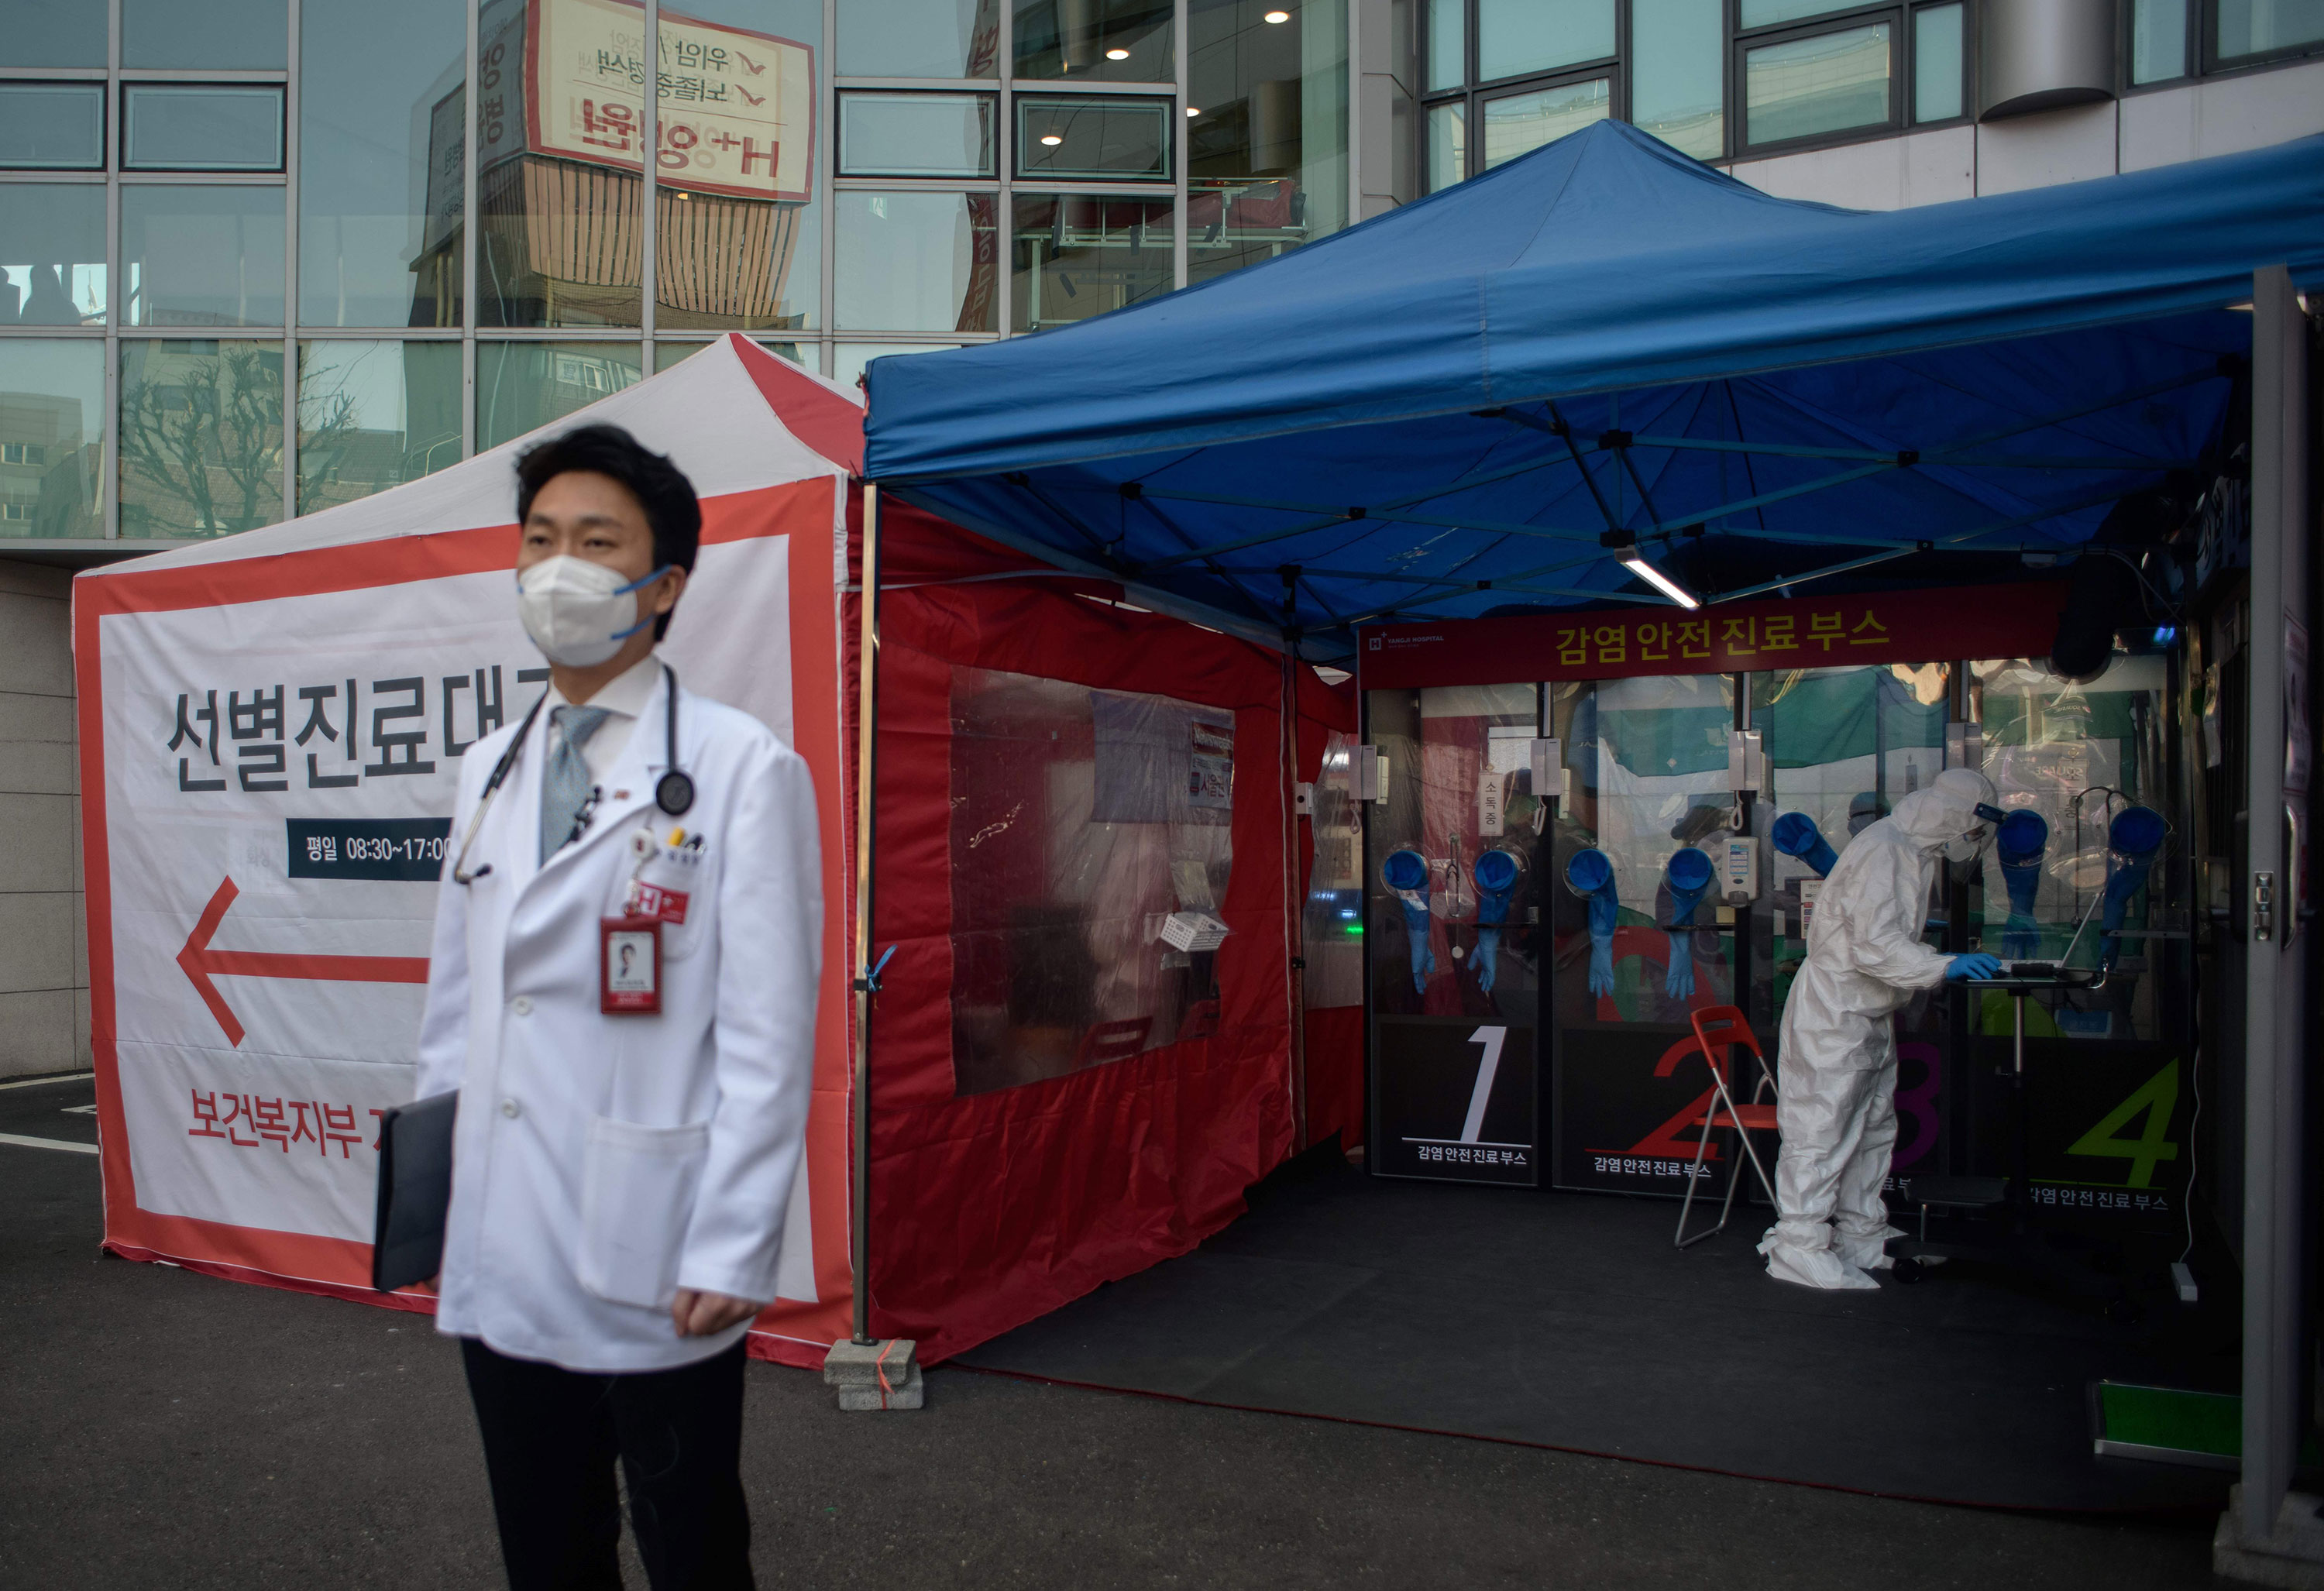 Hospital president Kim Sang-il stands outside a coronavirus testing booth at Yangji hospital in Seoul on March 17.